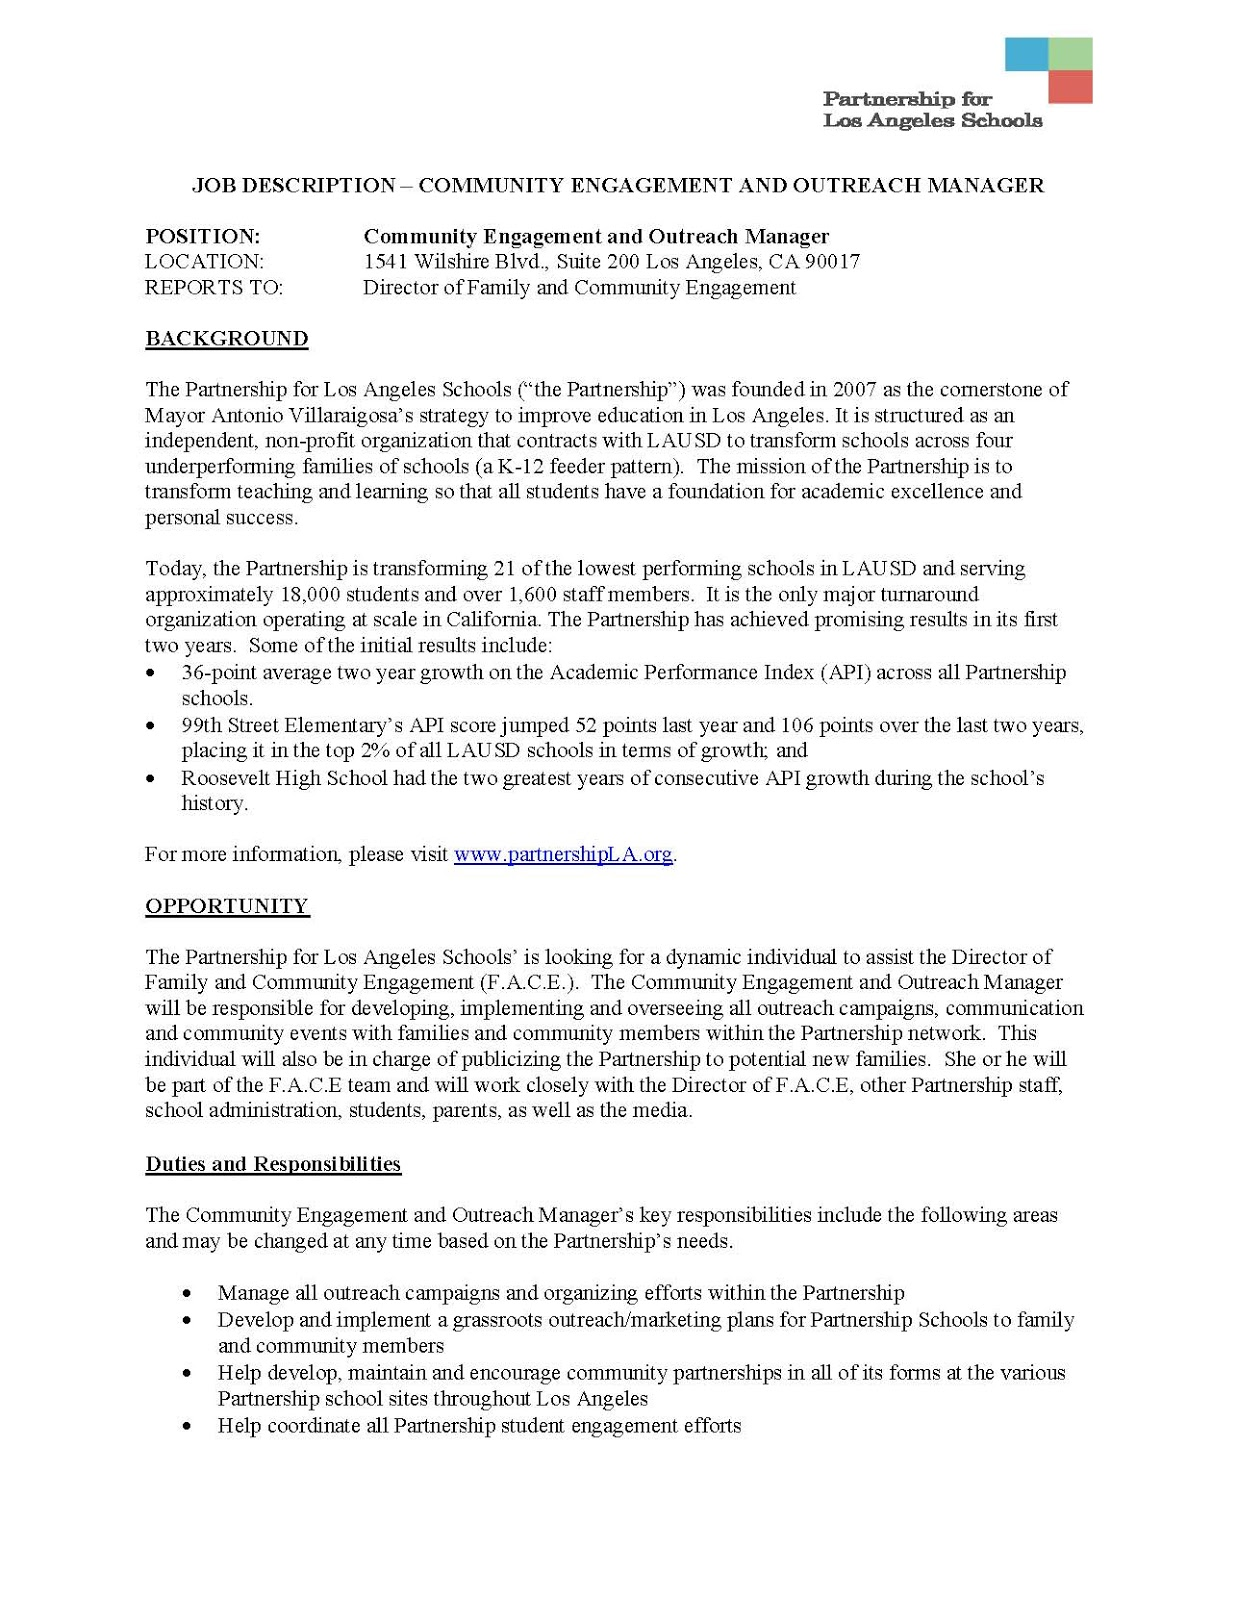 community outreach resume objective cipanewsletter outreach resume